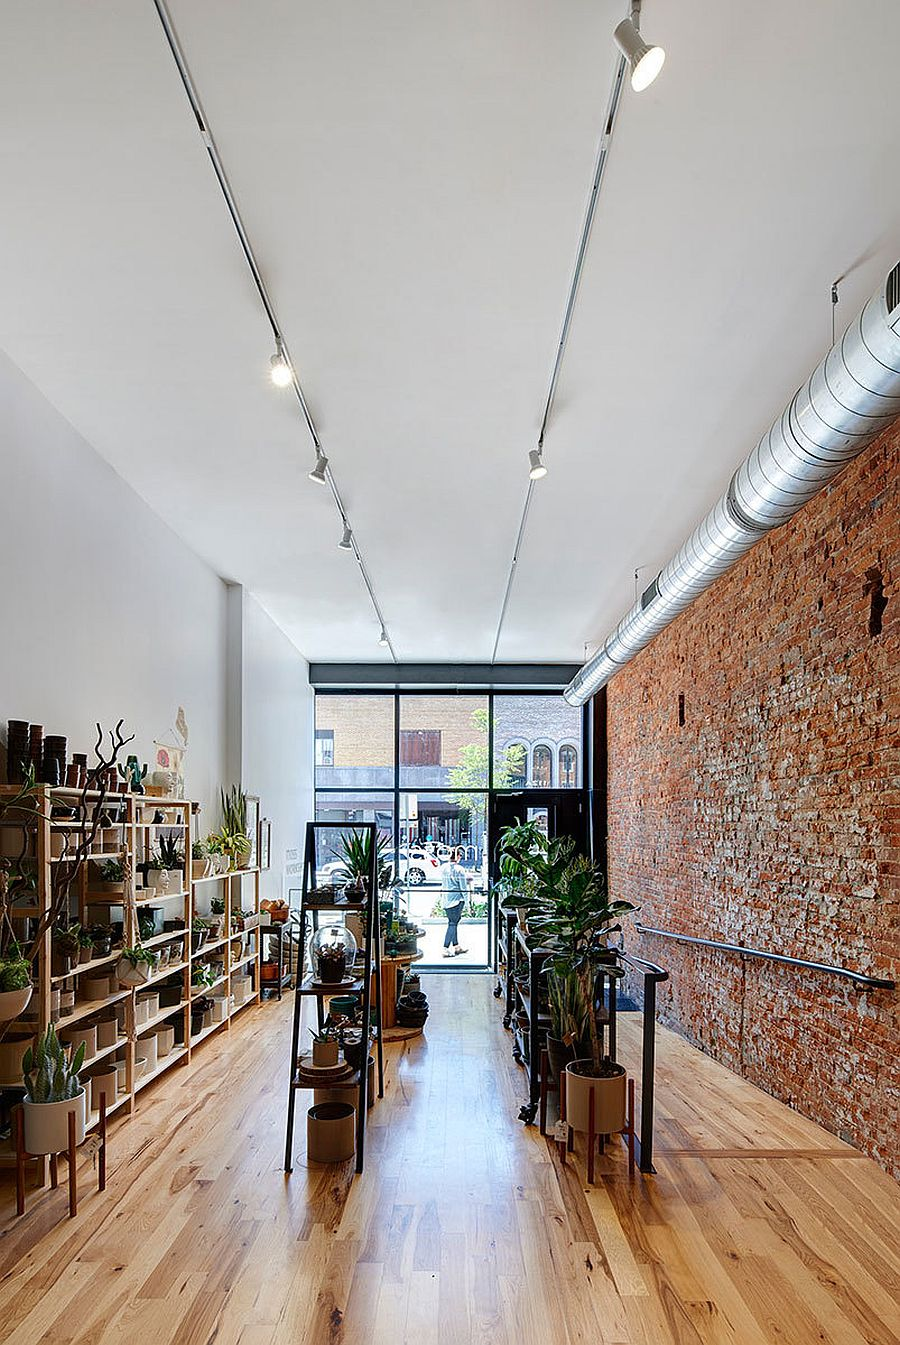 Lower level of the Industrial storefront filled with greenery